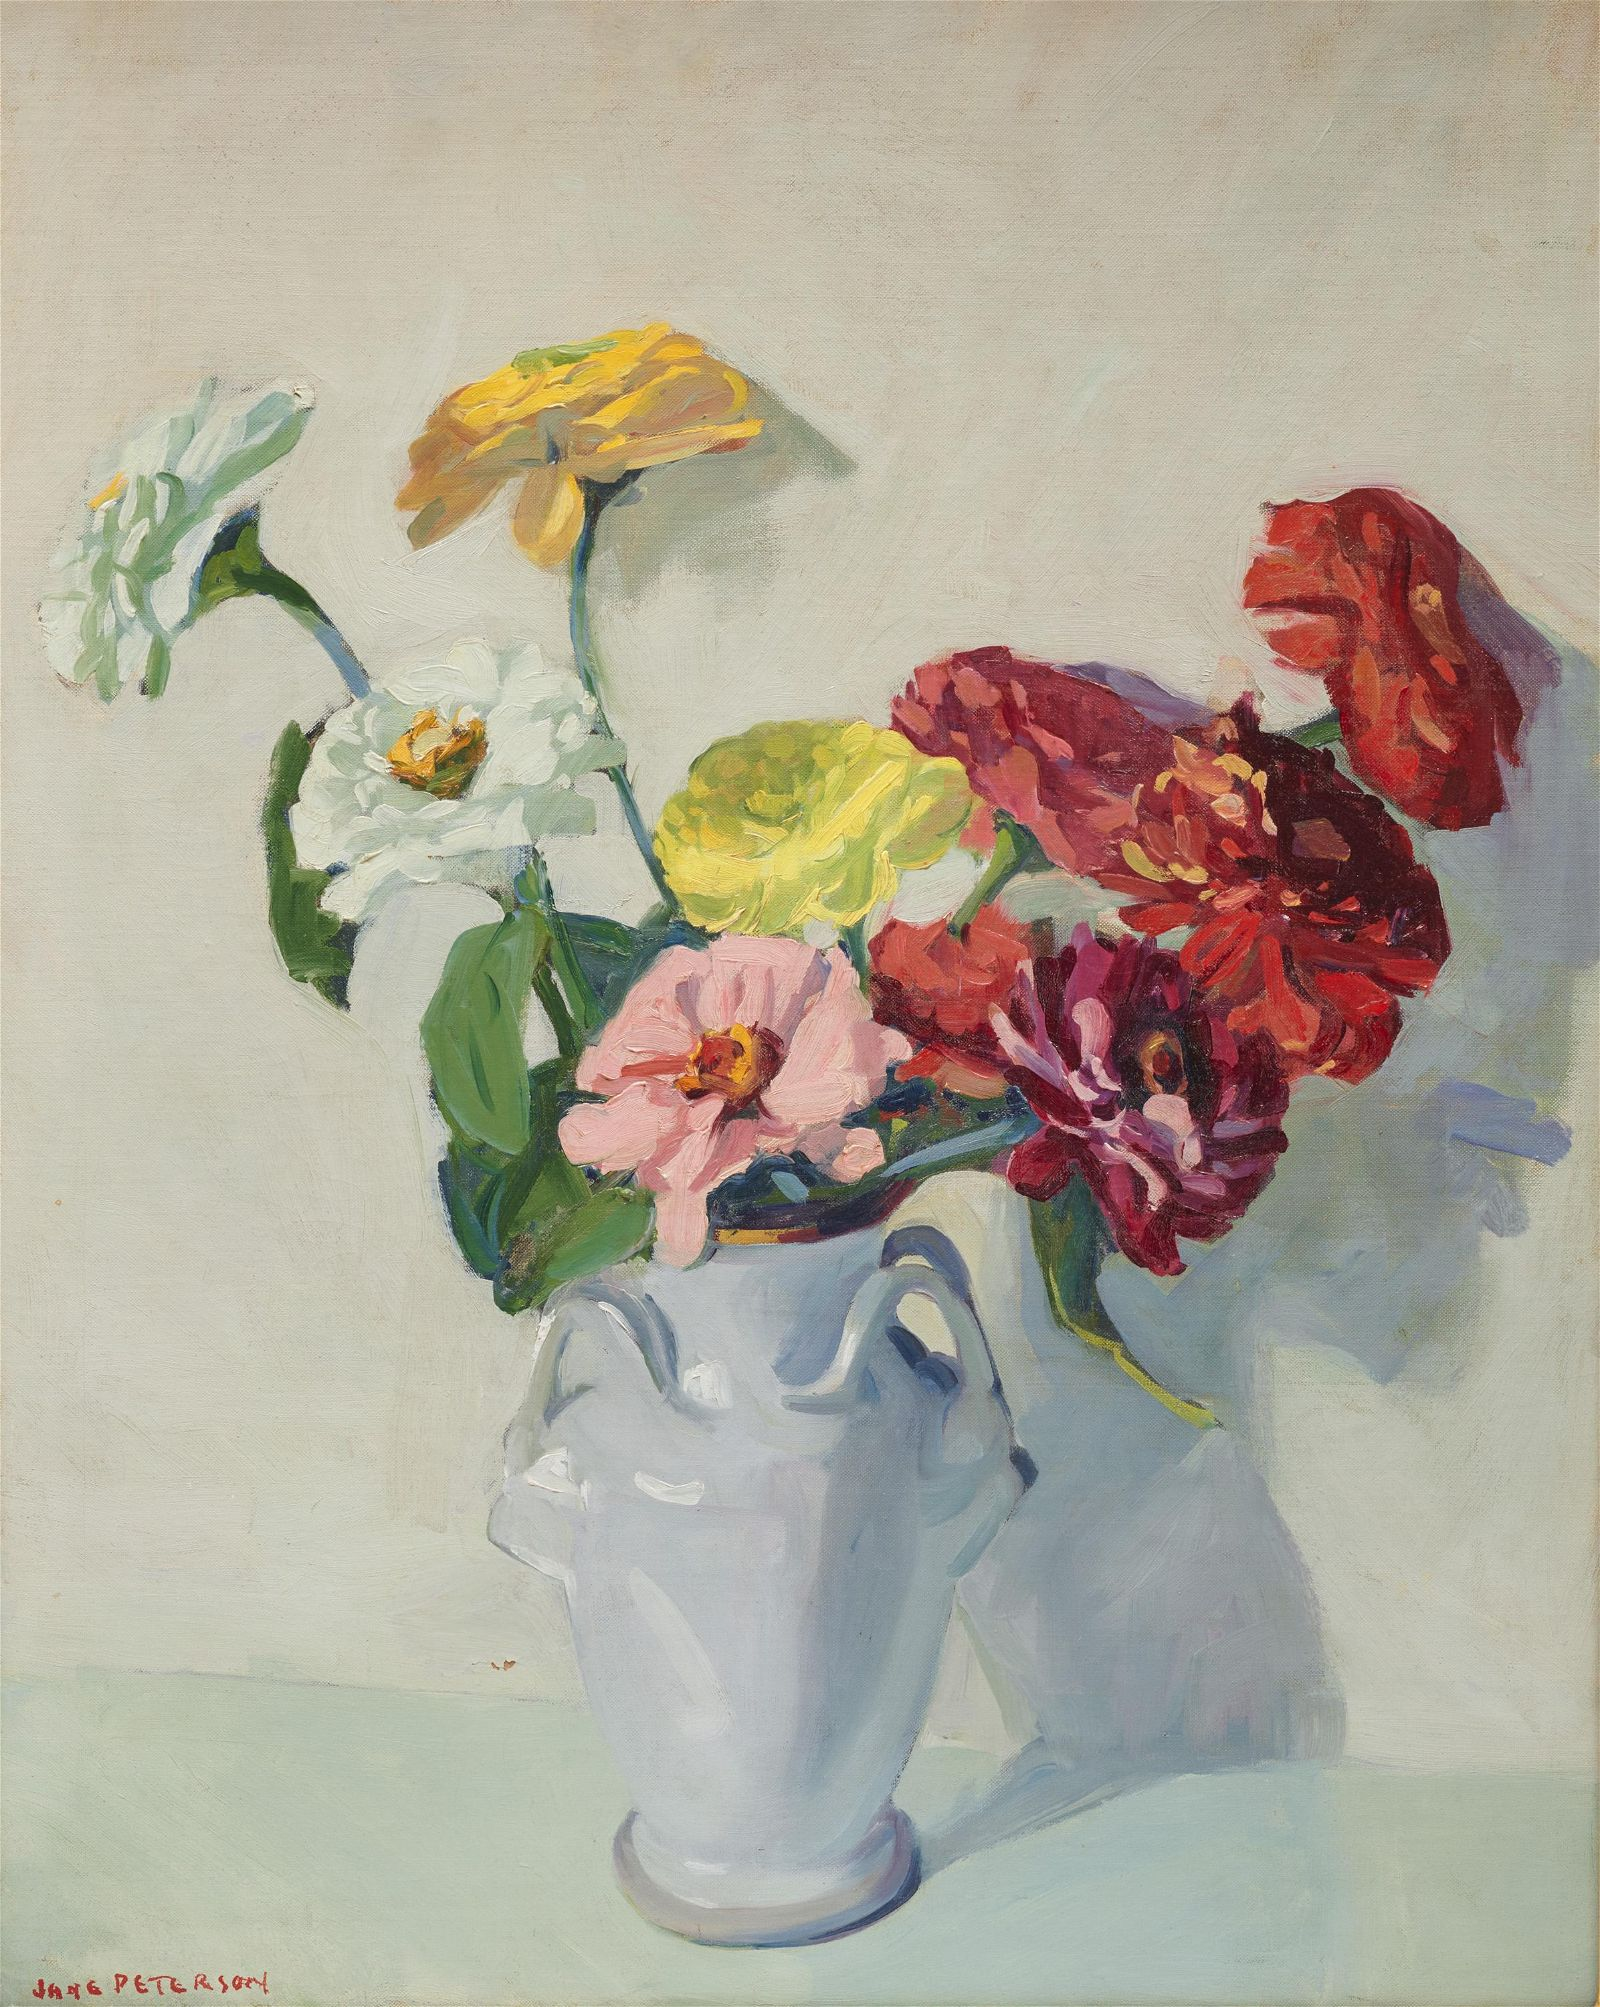 JANE PETERSON, (American, 1876-1965), Zinnias, oil on